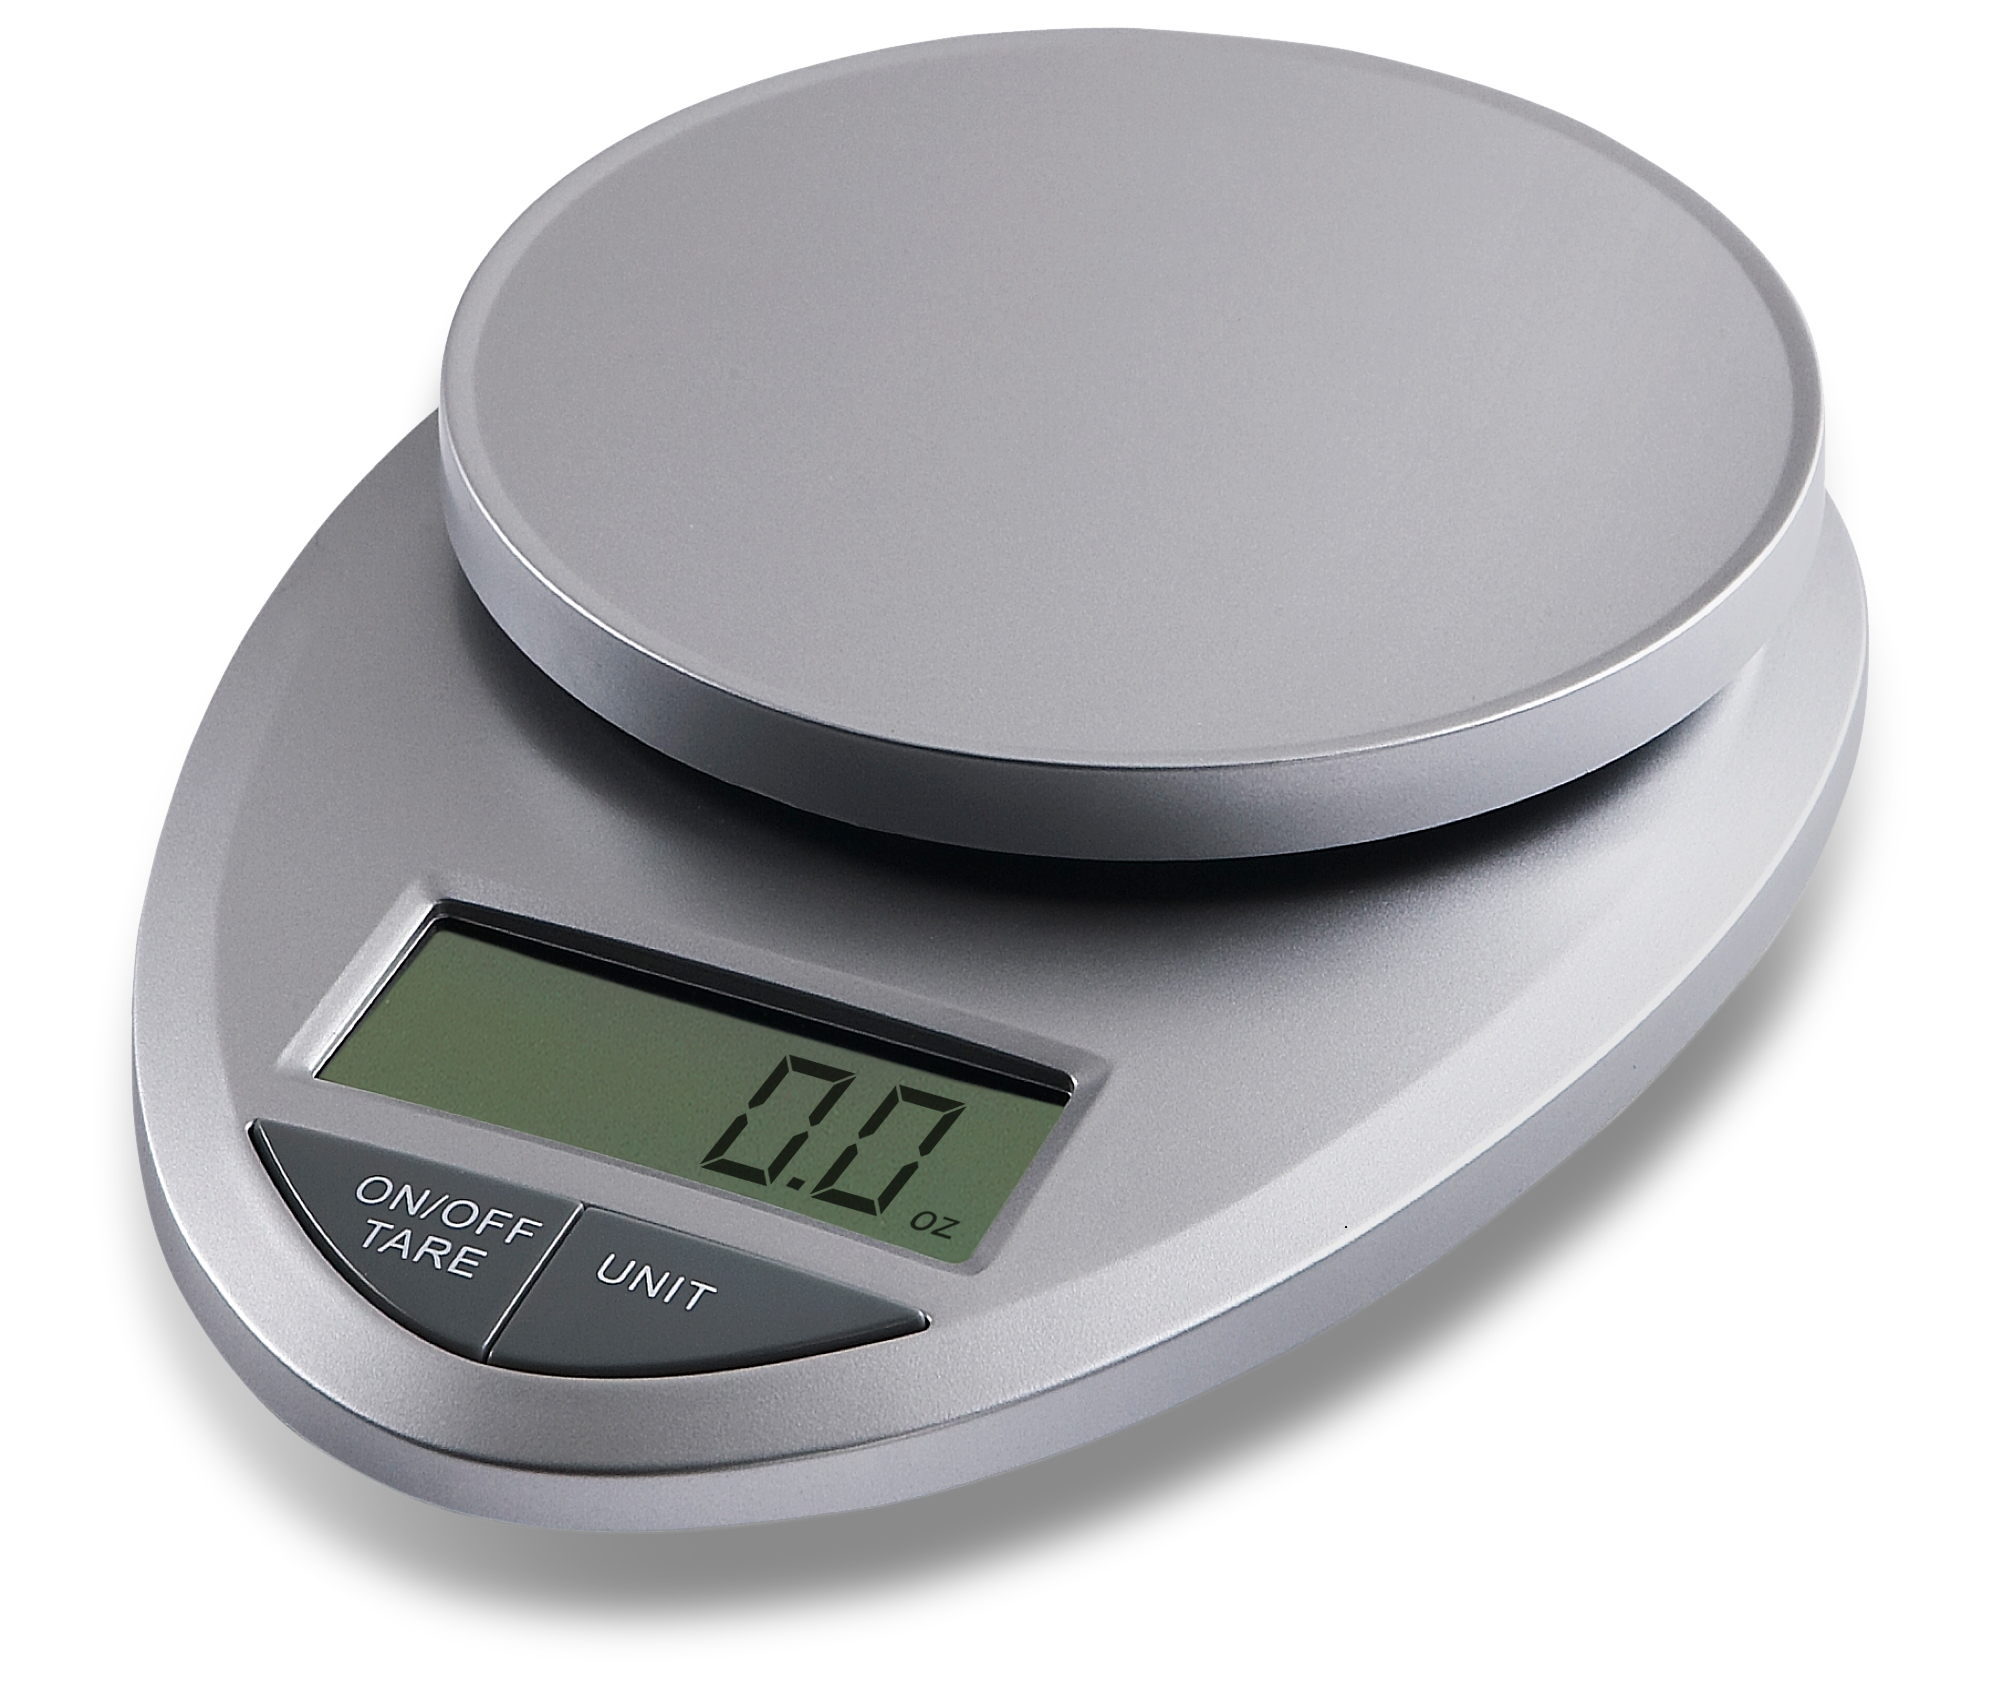 Precision Pro Digital Kitchen Scale Review & Giveaway